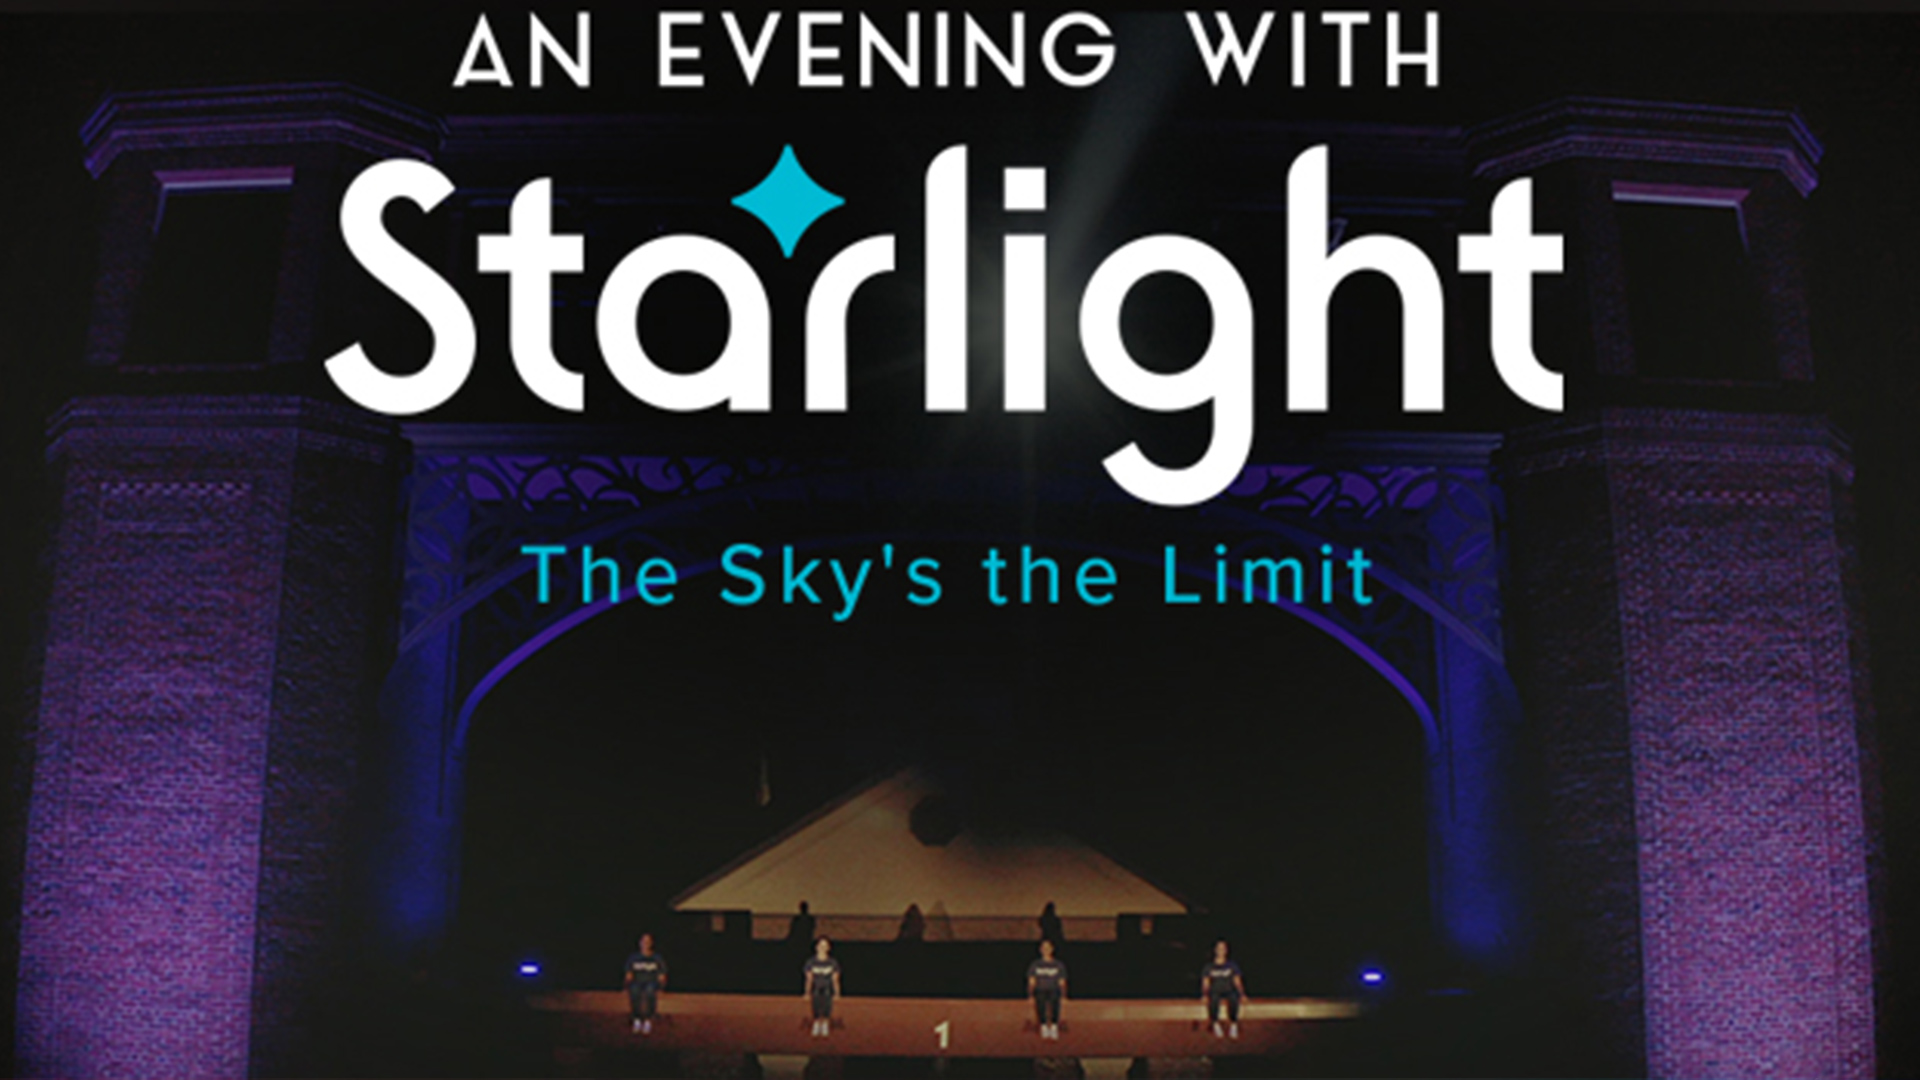 Join Us for An Evening With Starlight